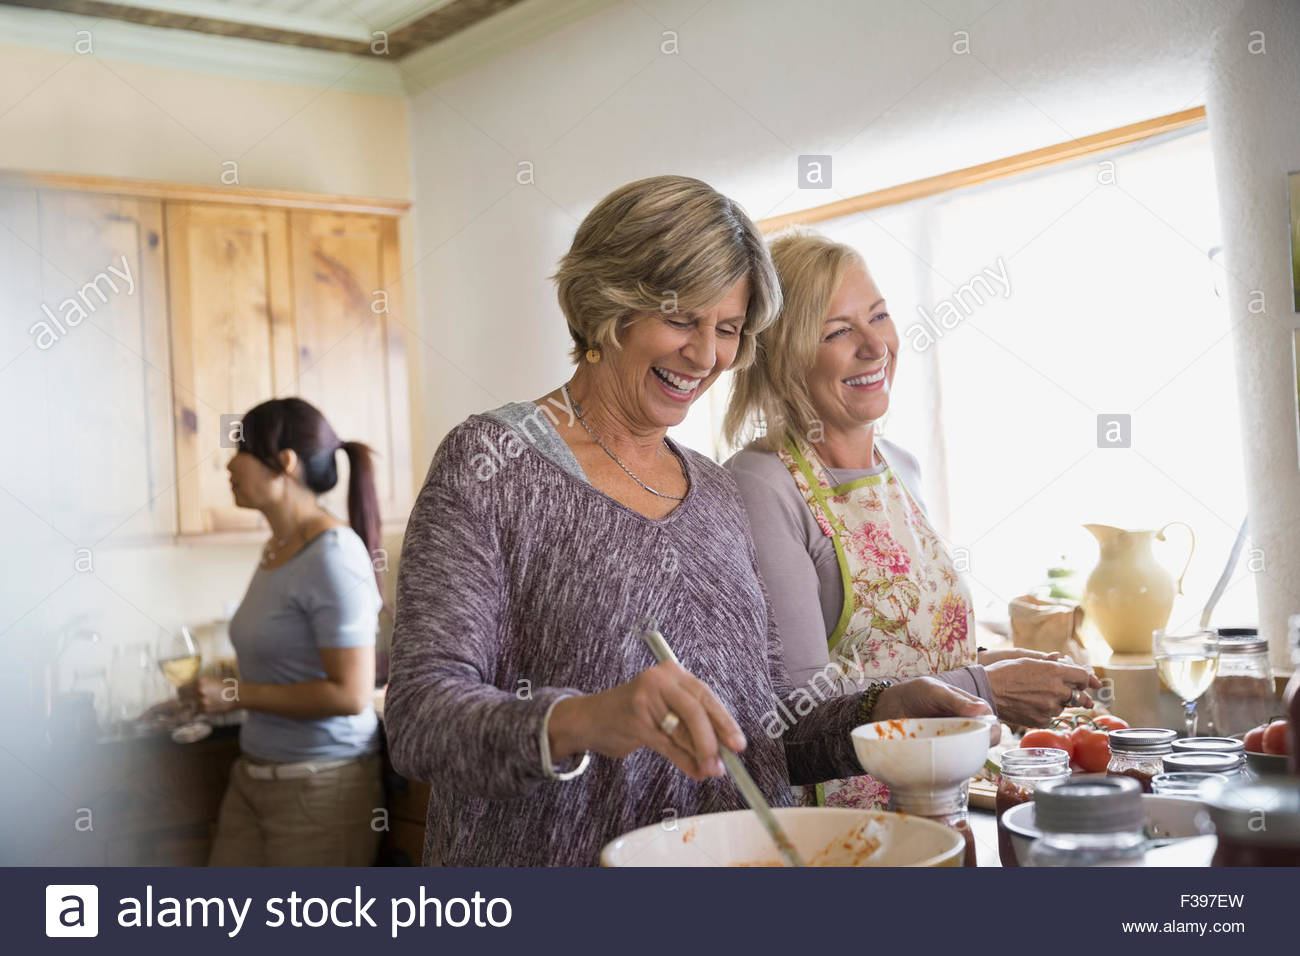 Laughing women canning in kitchen - Stock Image